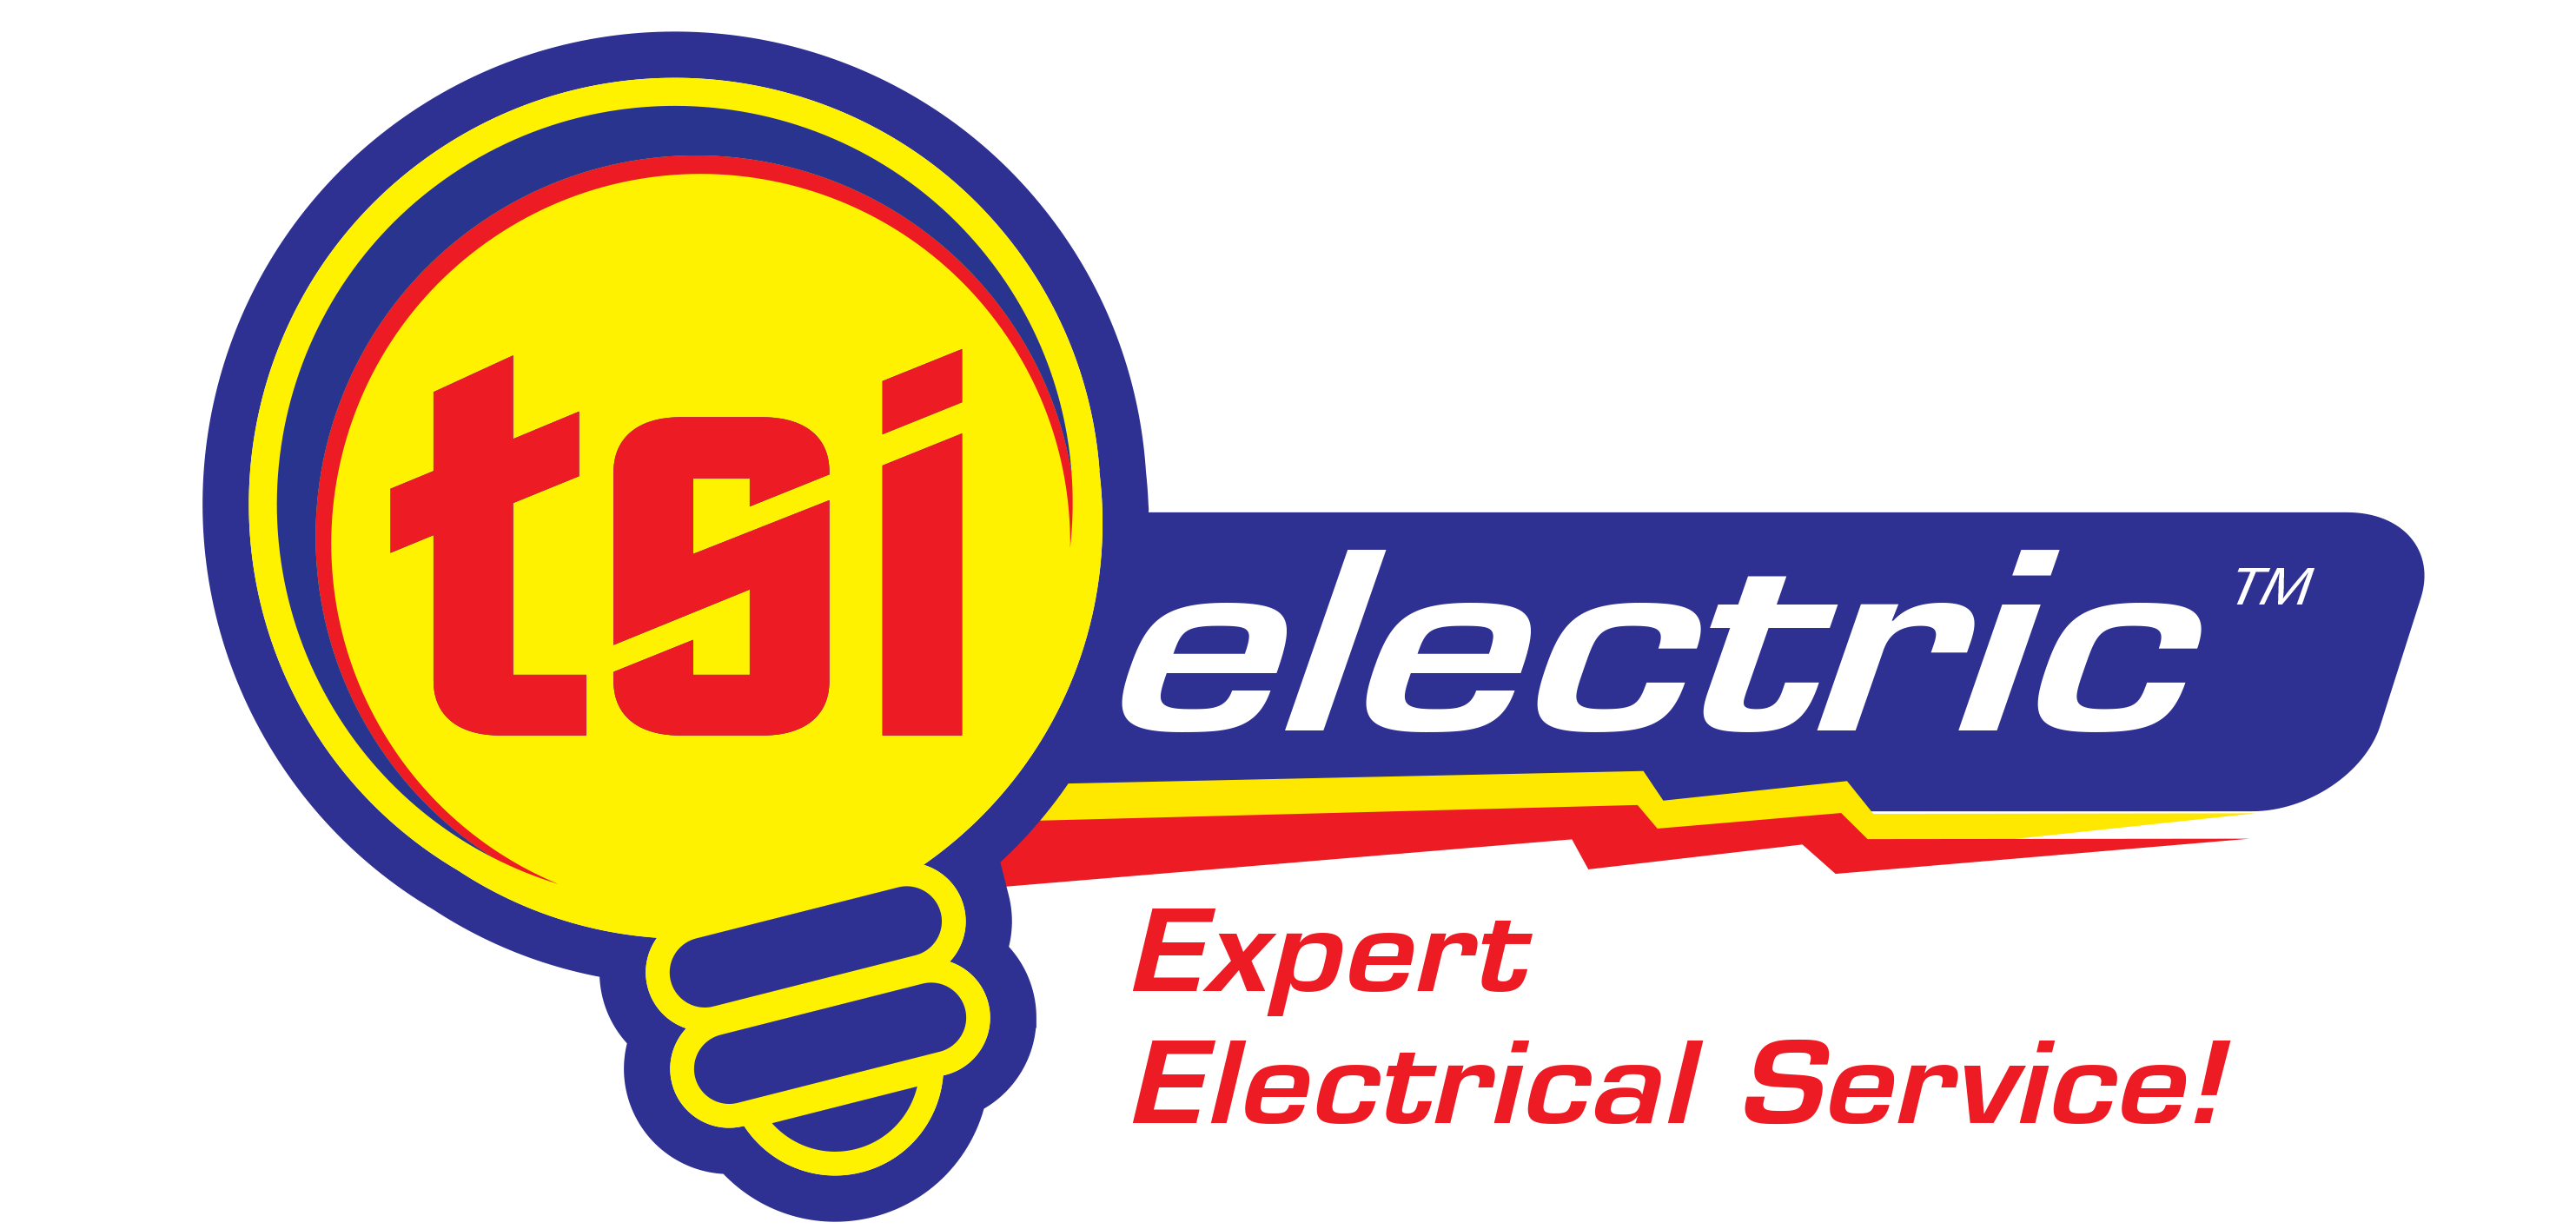 TSI Expert Electrical Service